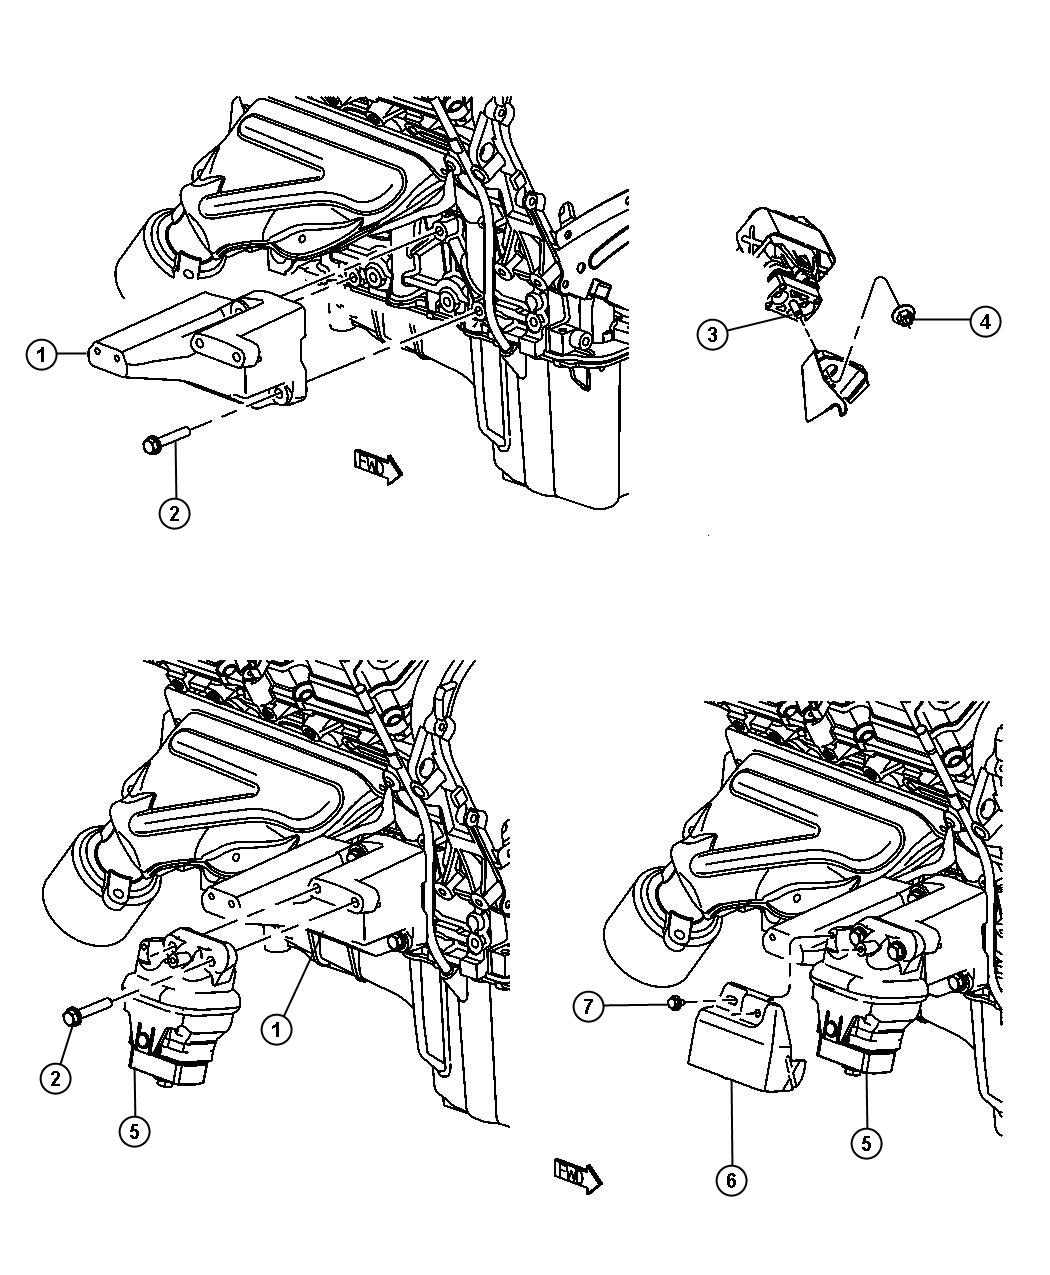 how to make a charger engine